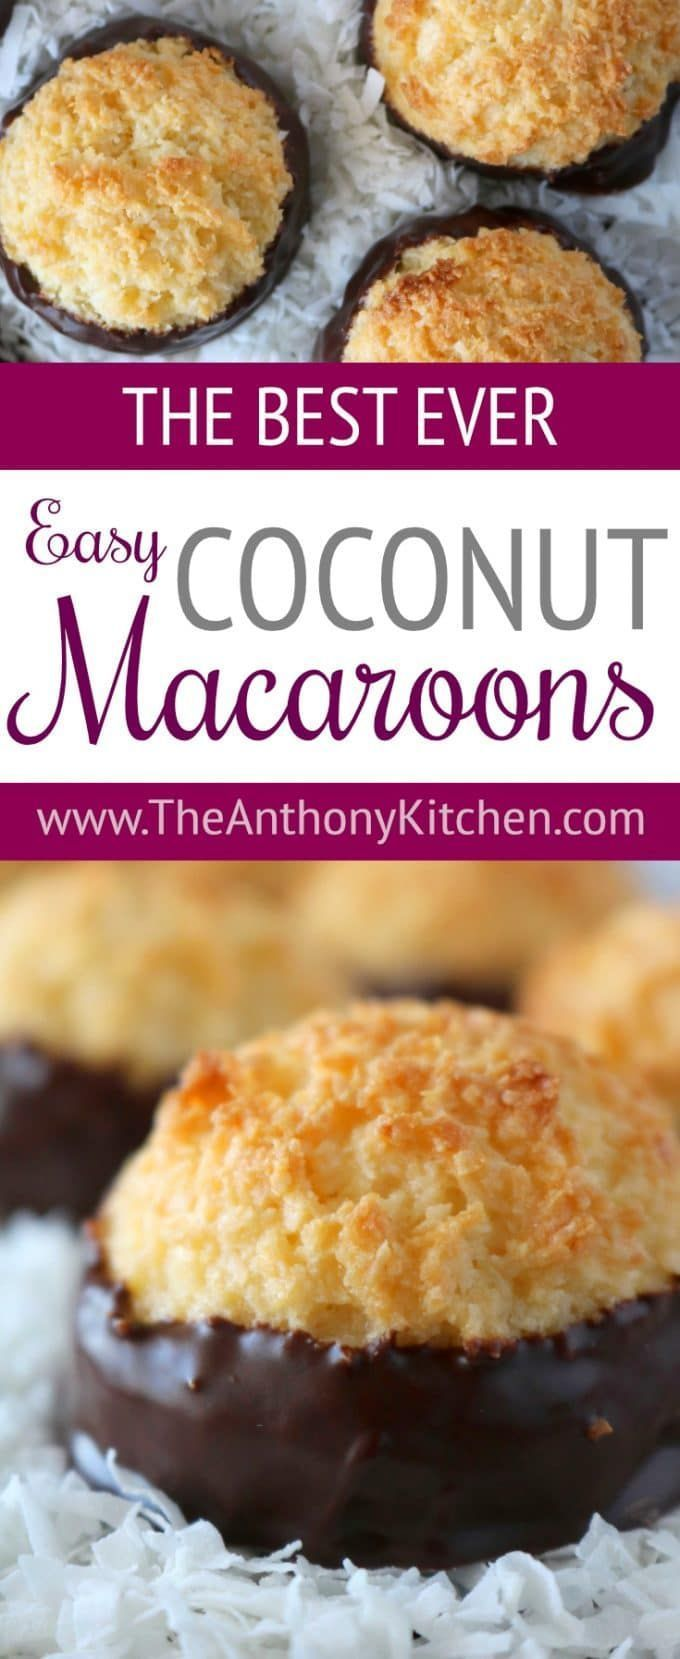 Easy Coconut Macaroons Made With Condensed Milk A Simple Recipe For Easy Coconut Macaroons M Macaroon Recipes Coconut Macaroons Easy Coconut Macaroons Recipe